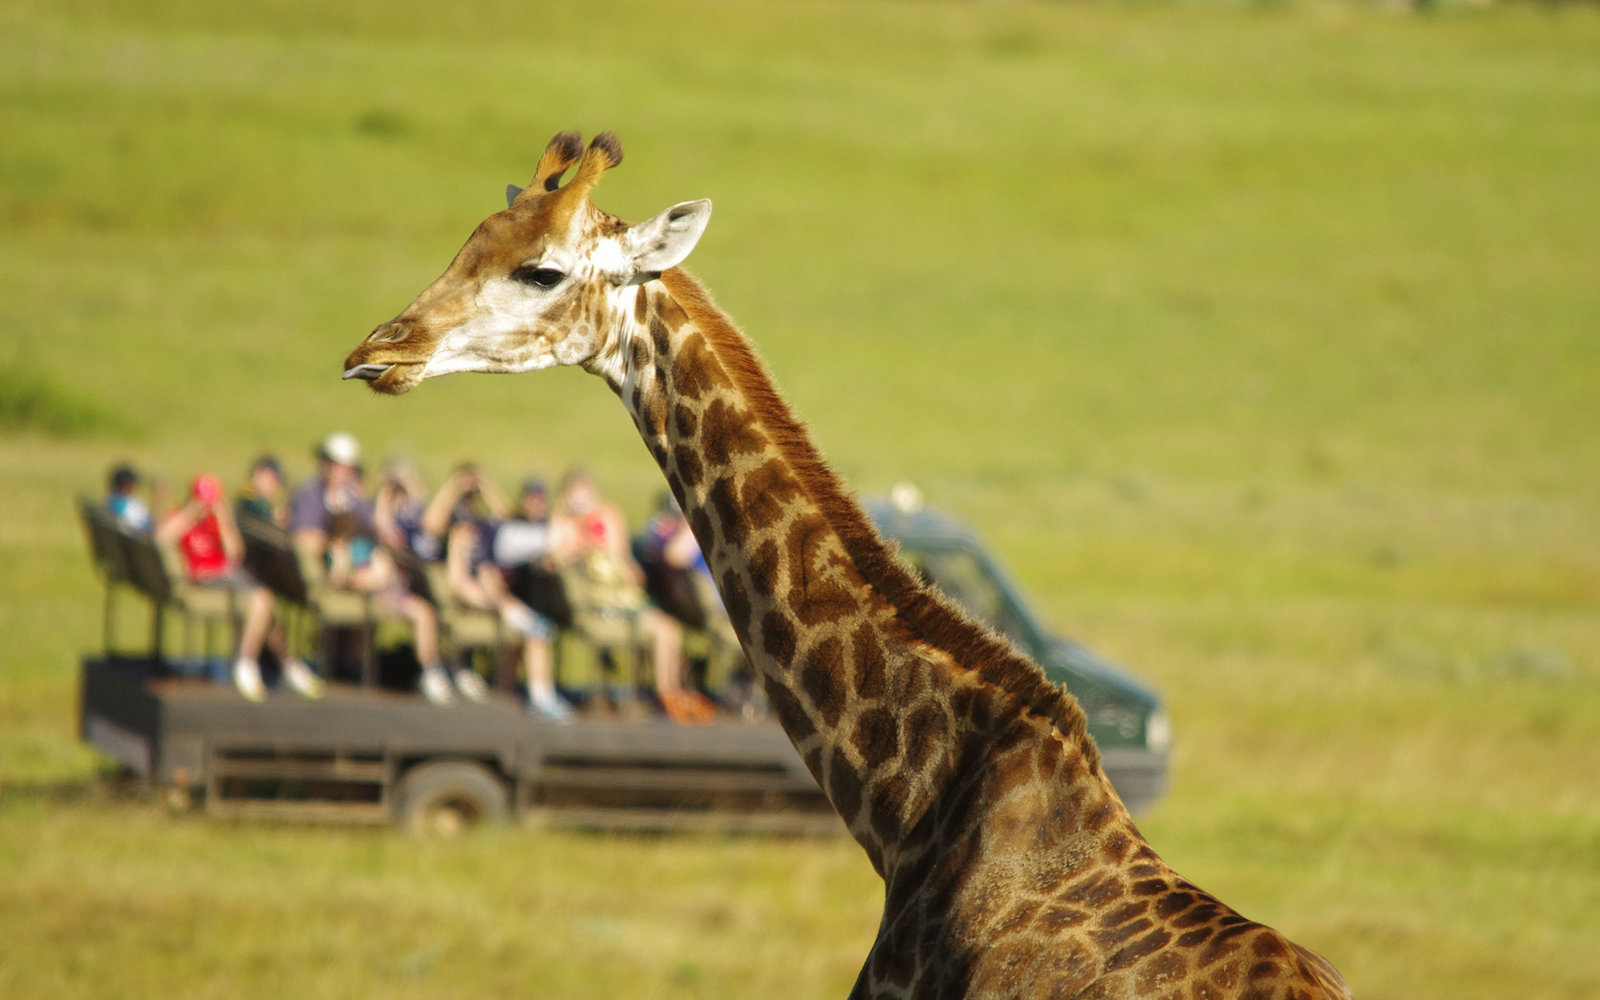 ***EXCLUSIVE***PORT ELIZABETH, SOUTH AFRICA - MARCH 29: Tourists watch a giraffe giving birth in Kragga Kamma Game Park on March 29, 2015 in Port Elizabeth, South Africa.PHOTOGRAPH BY Ayesha Cantor / Barcroft Media (Photo credit should read Ayesha Can